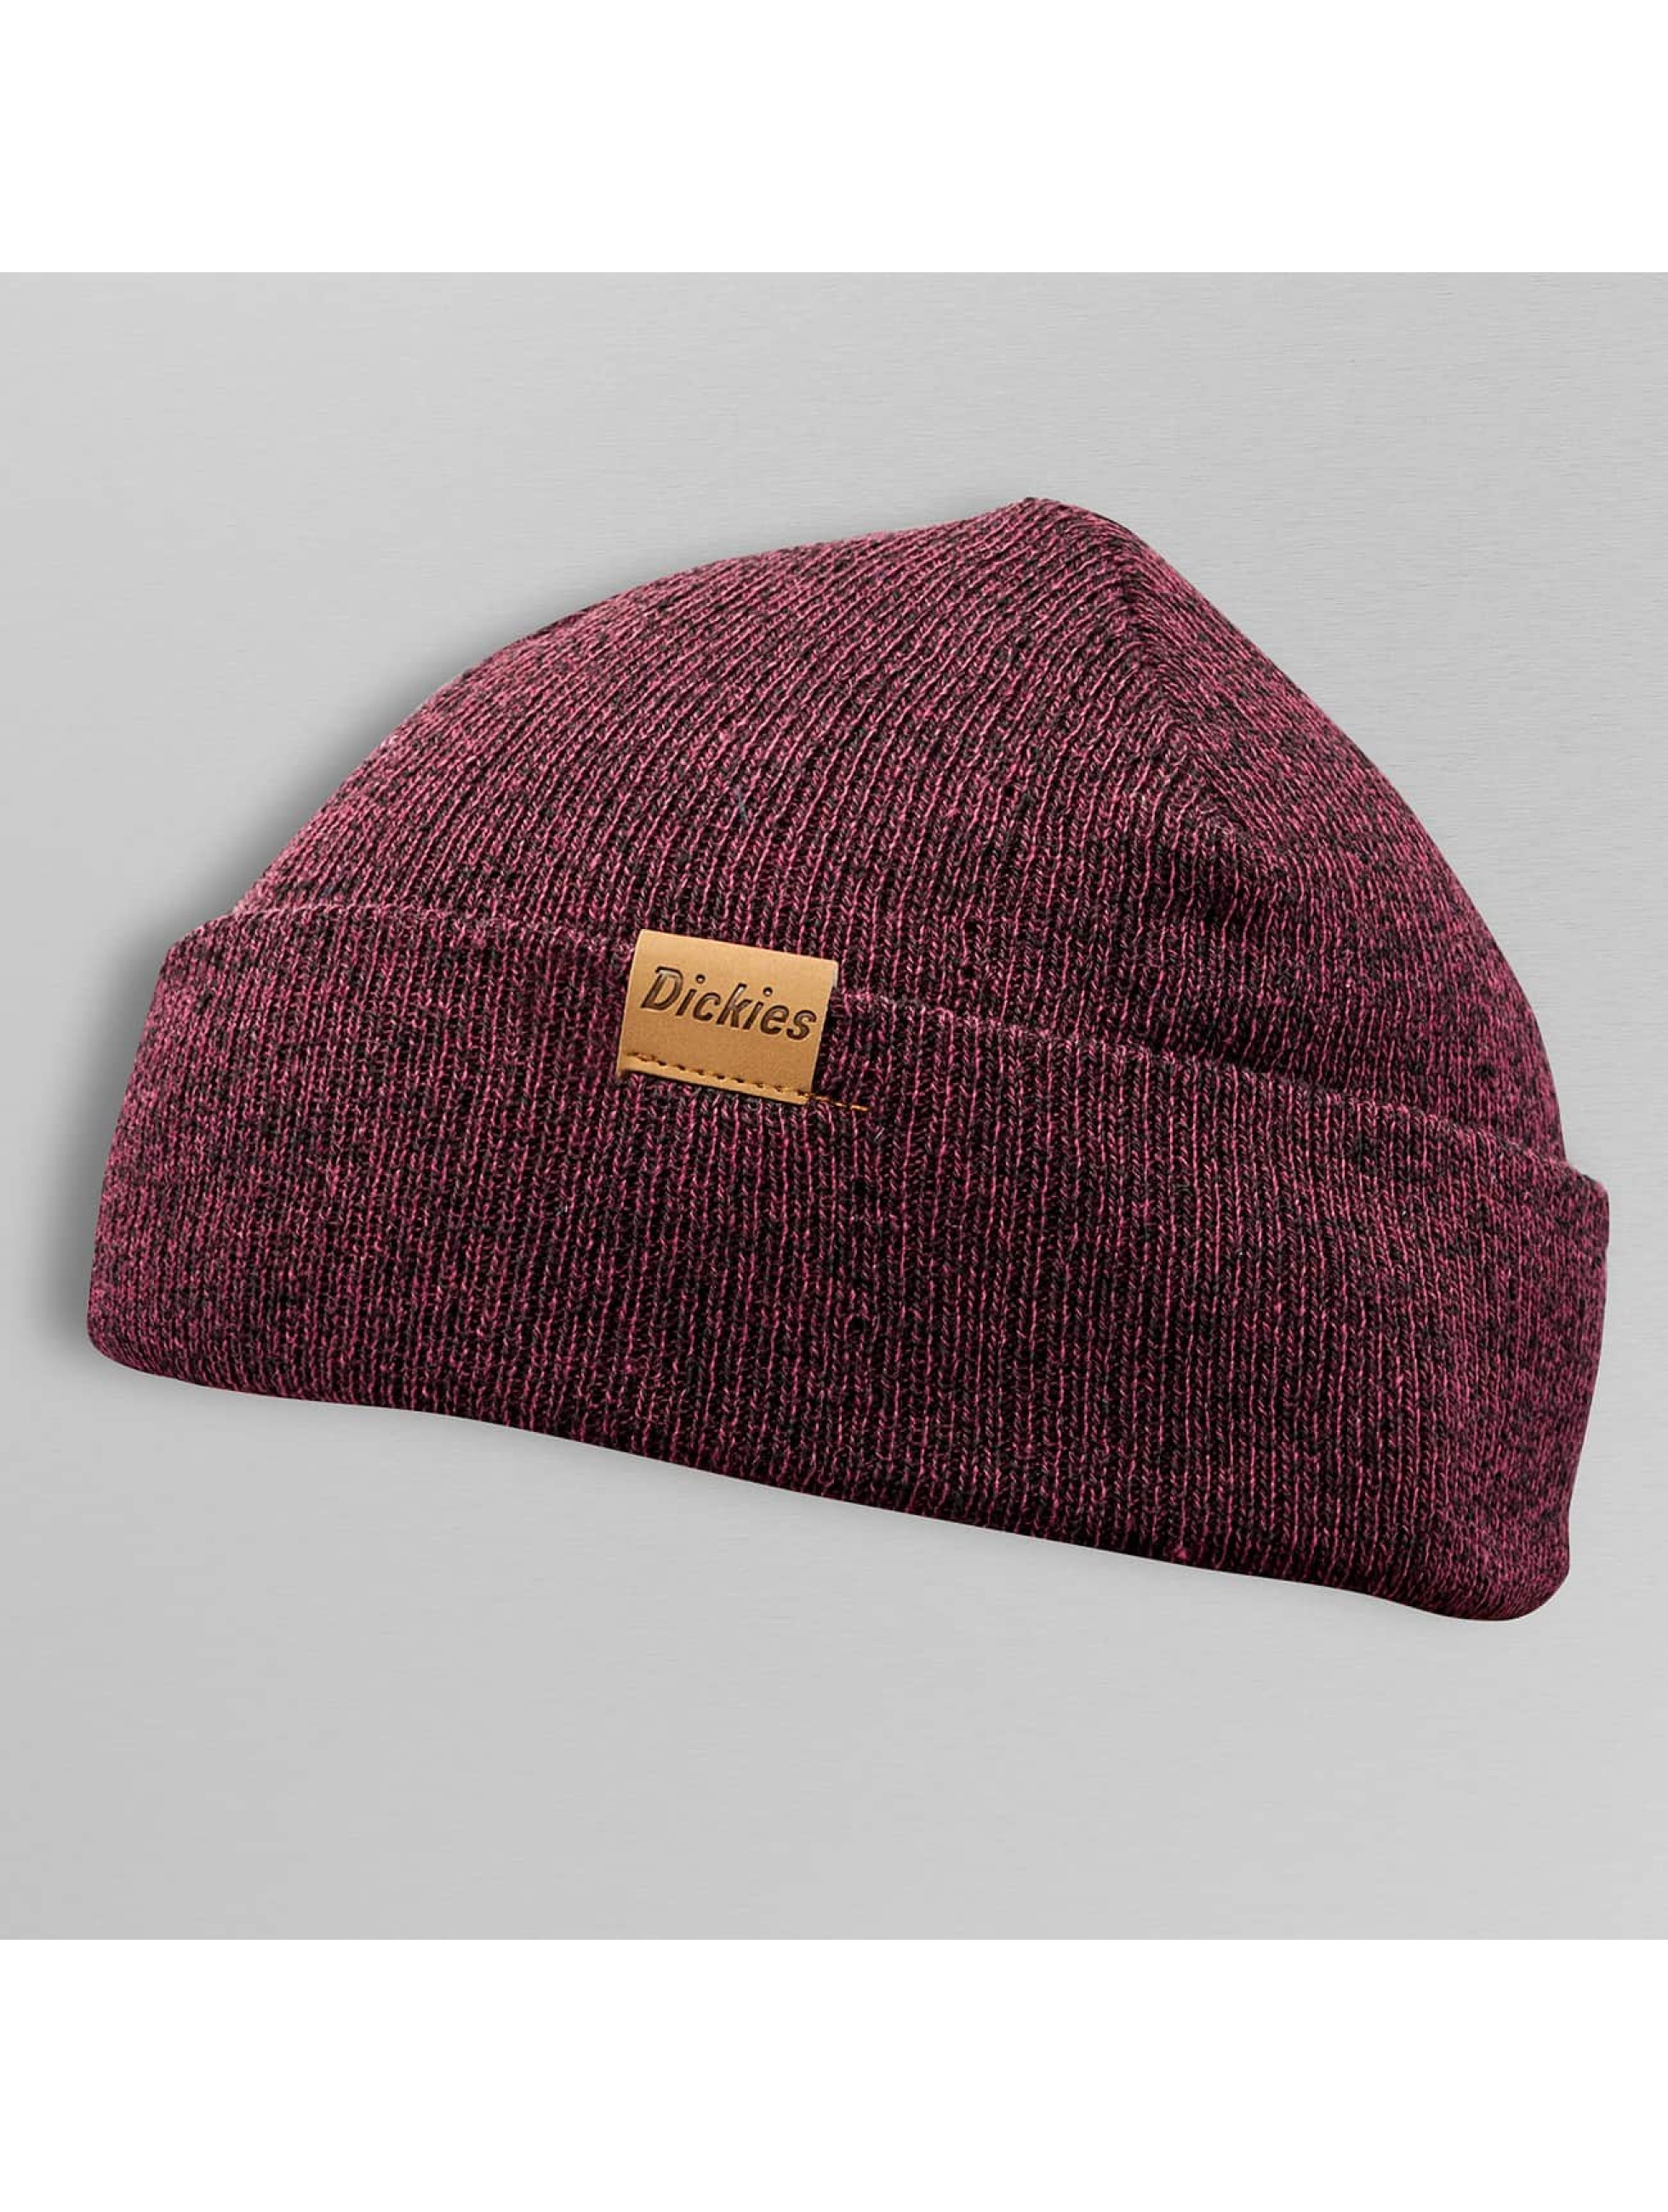 Dickies Bonnet Tyner rouge